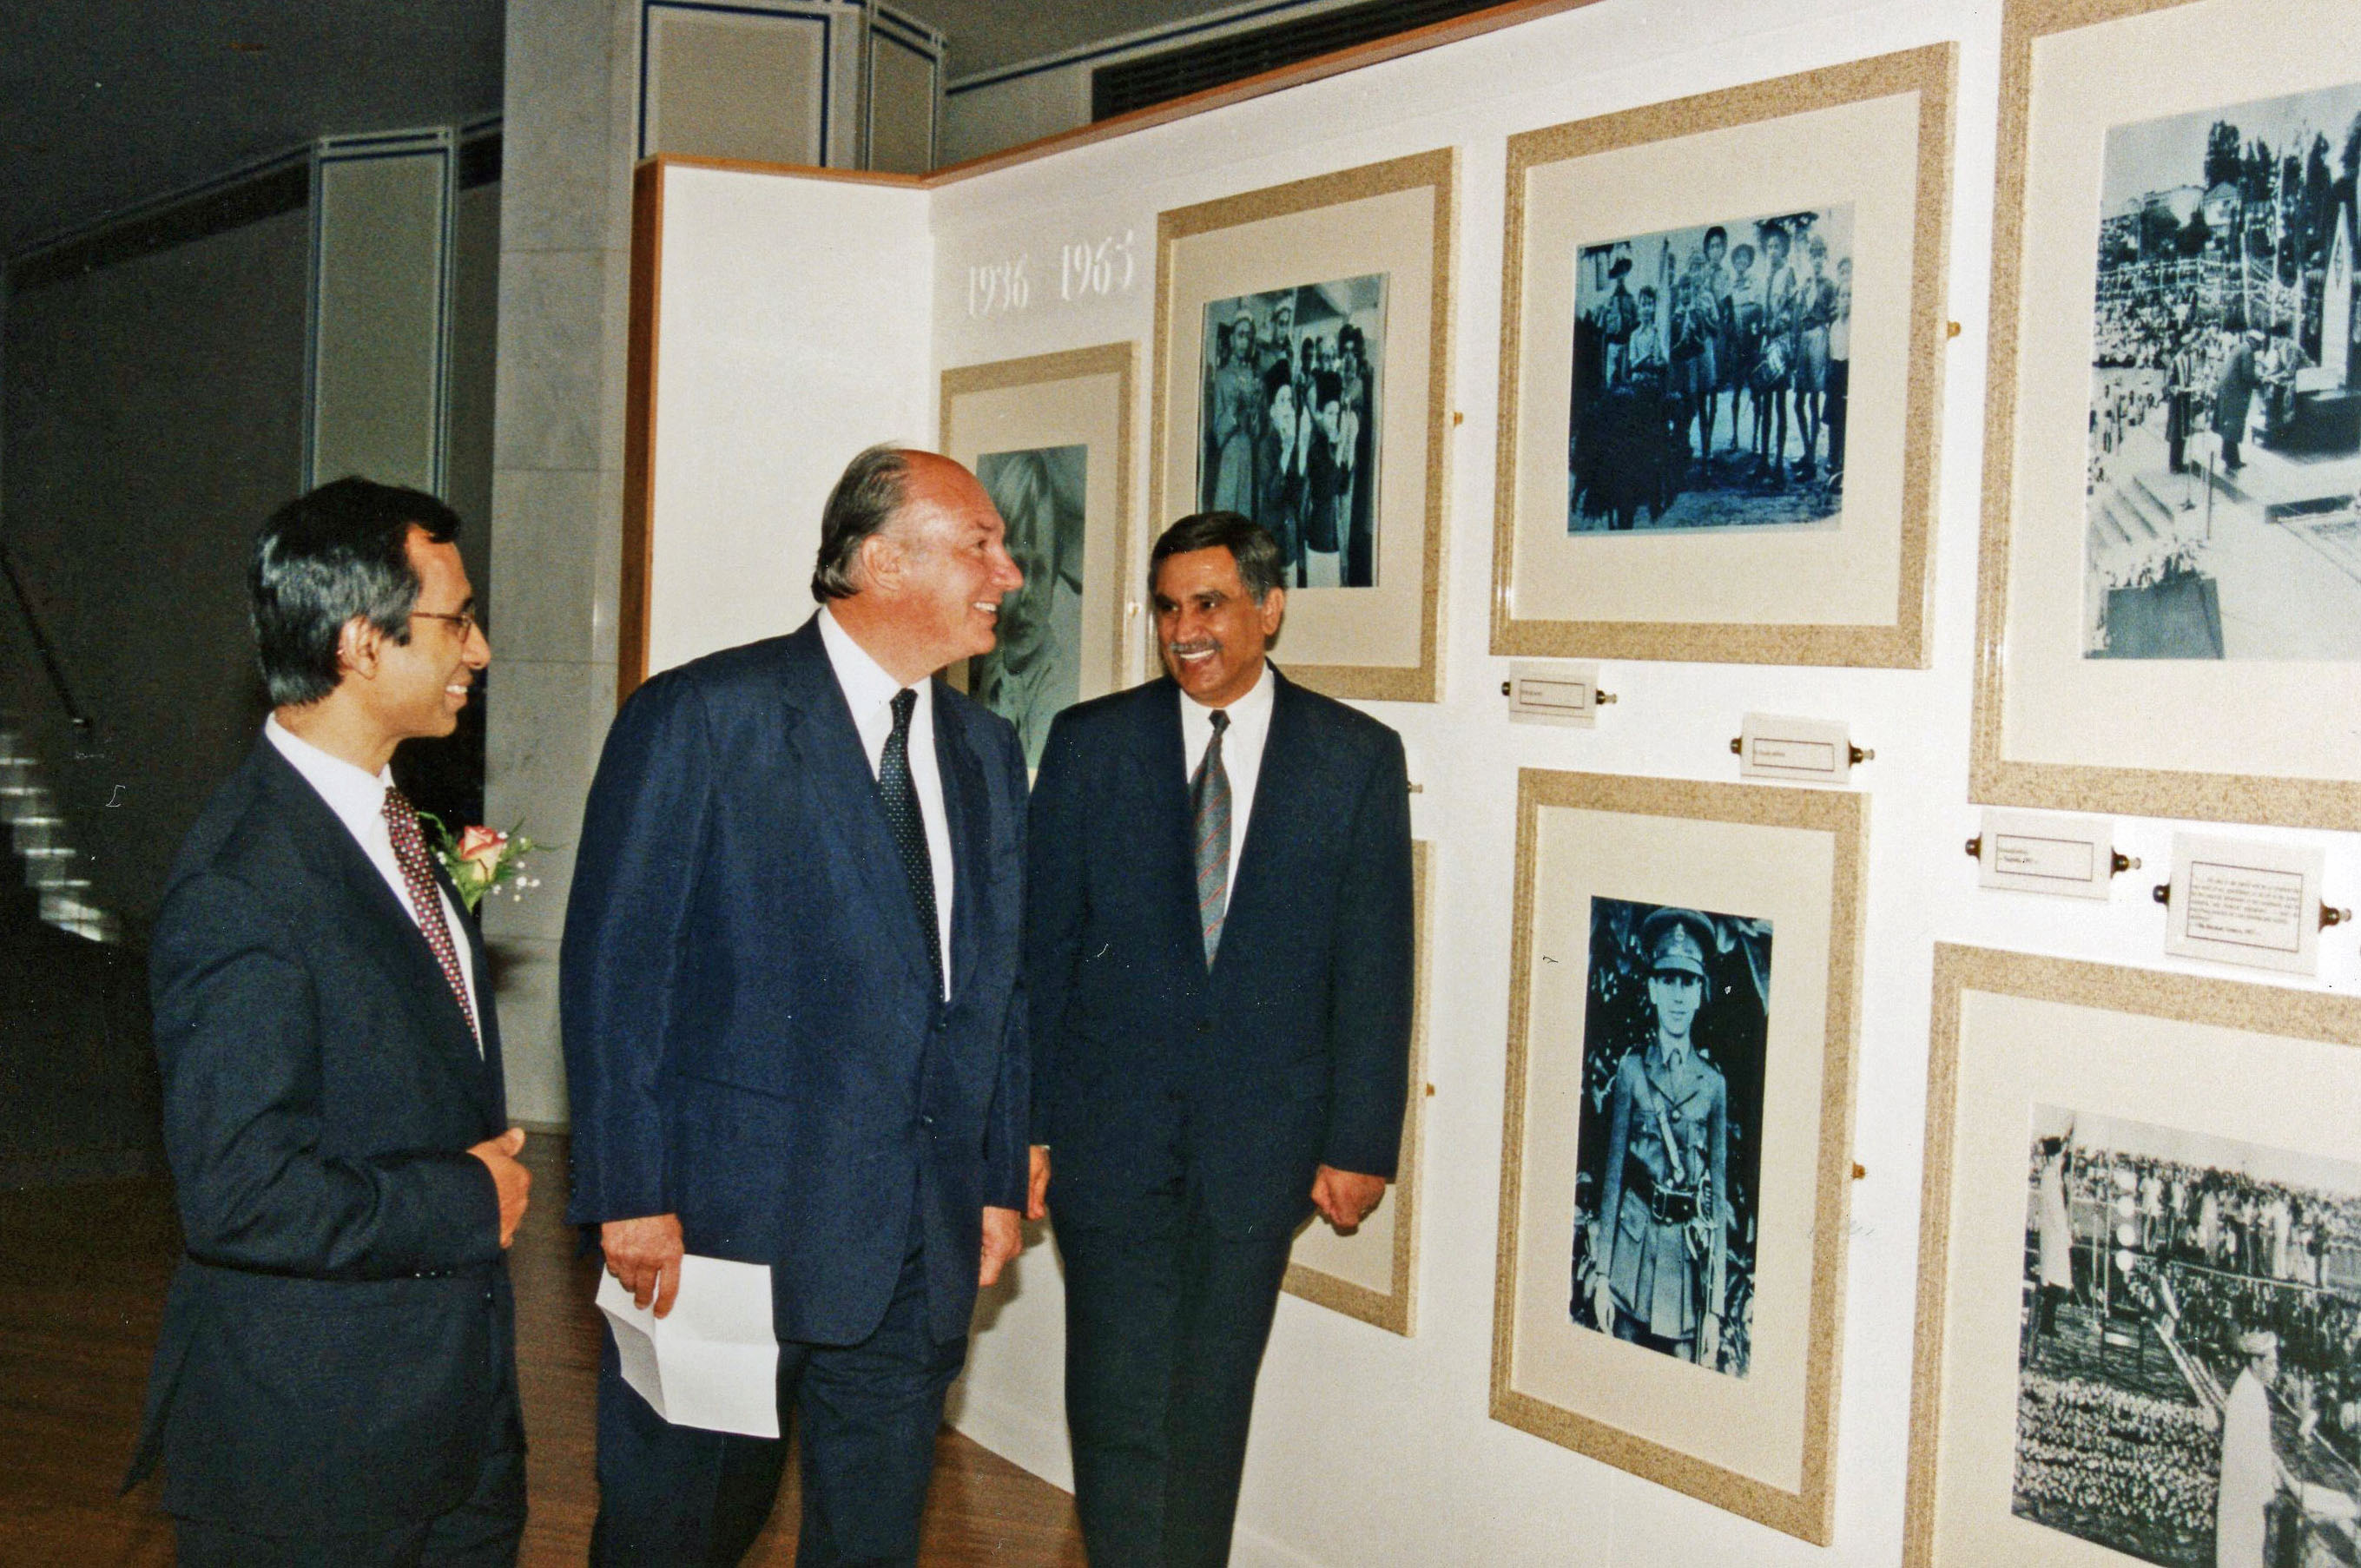 Mawlana Hazar Imam reviews an exhibition at the Ismaili Centre, London on the occasion of the 40th Anniversary of his accession to the Imamat.